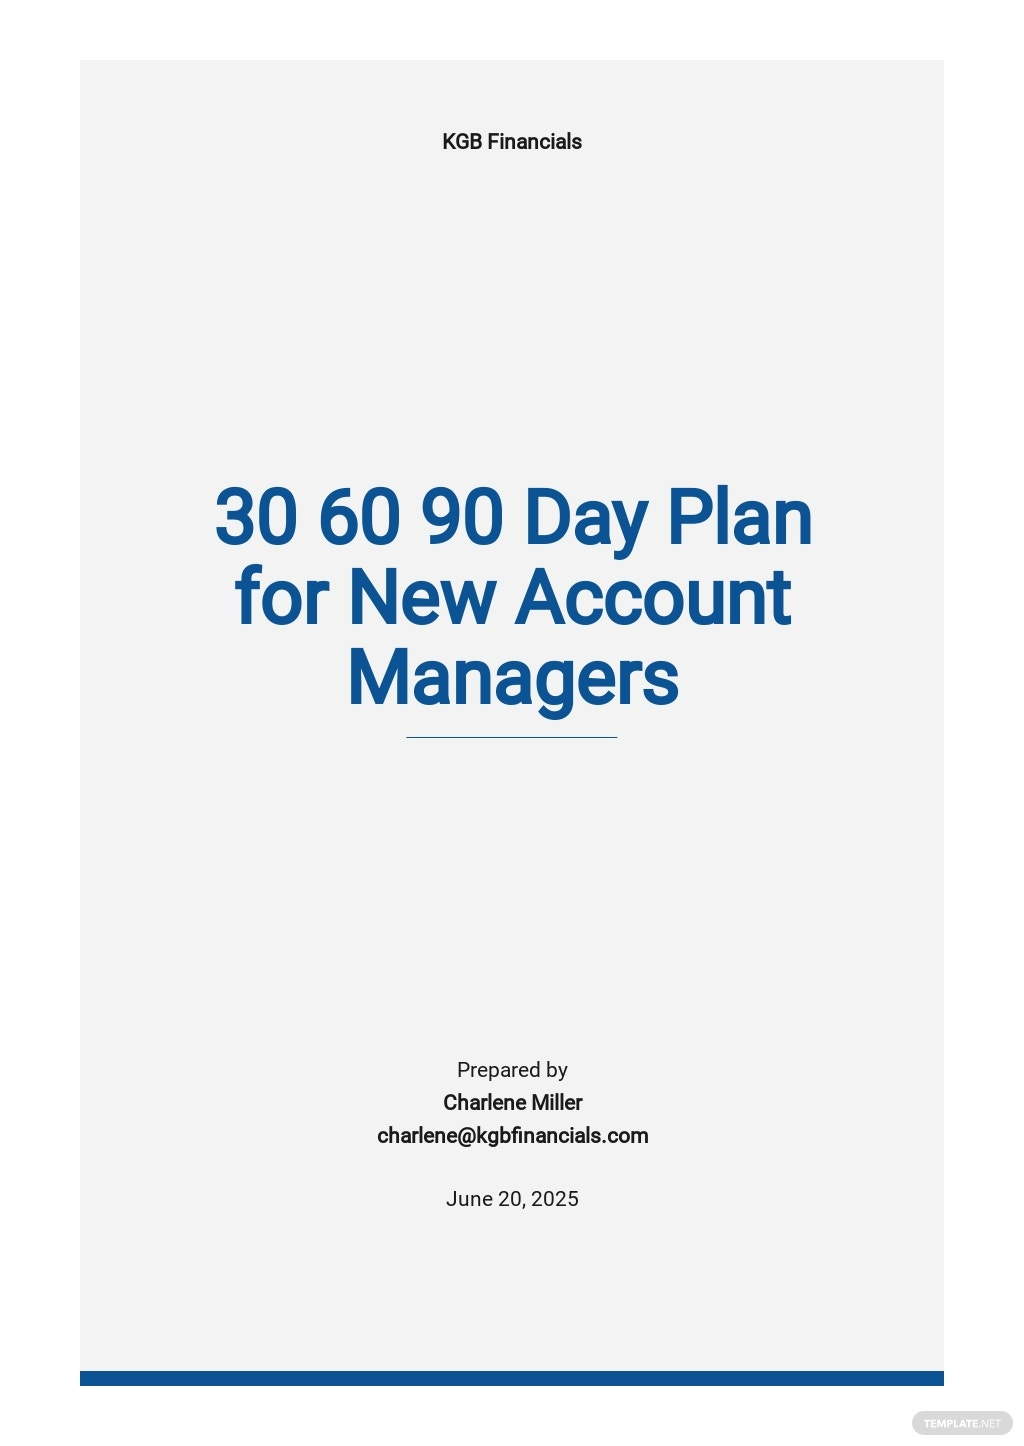 30 60 90 Day Plan for New Account Managers Template.jpe